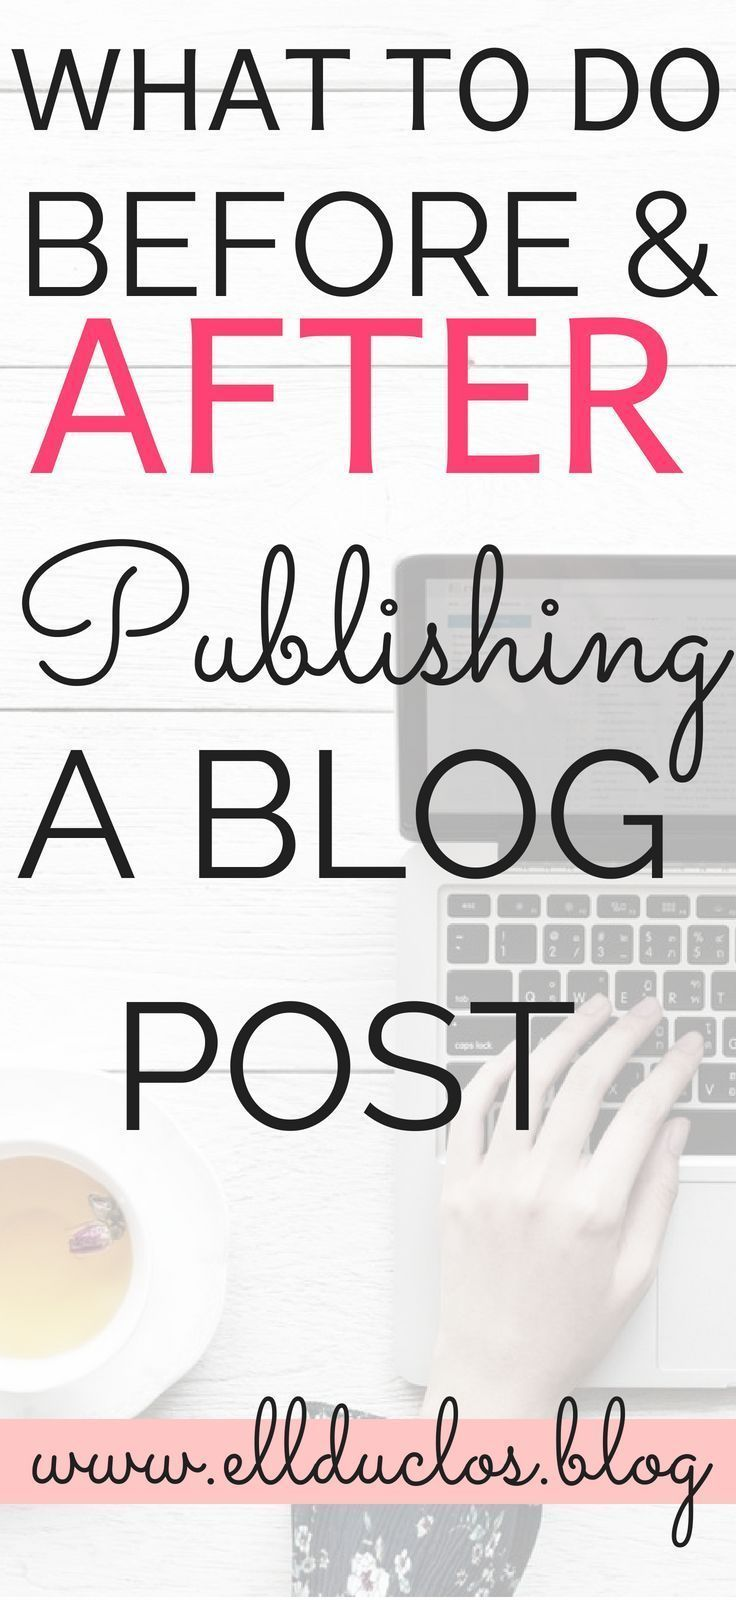 What to do before and after publishing a blog post.